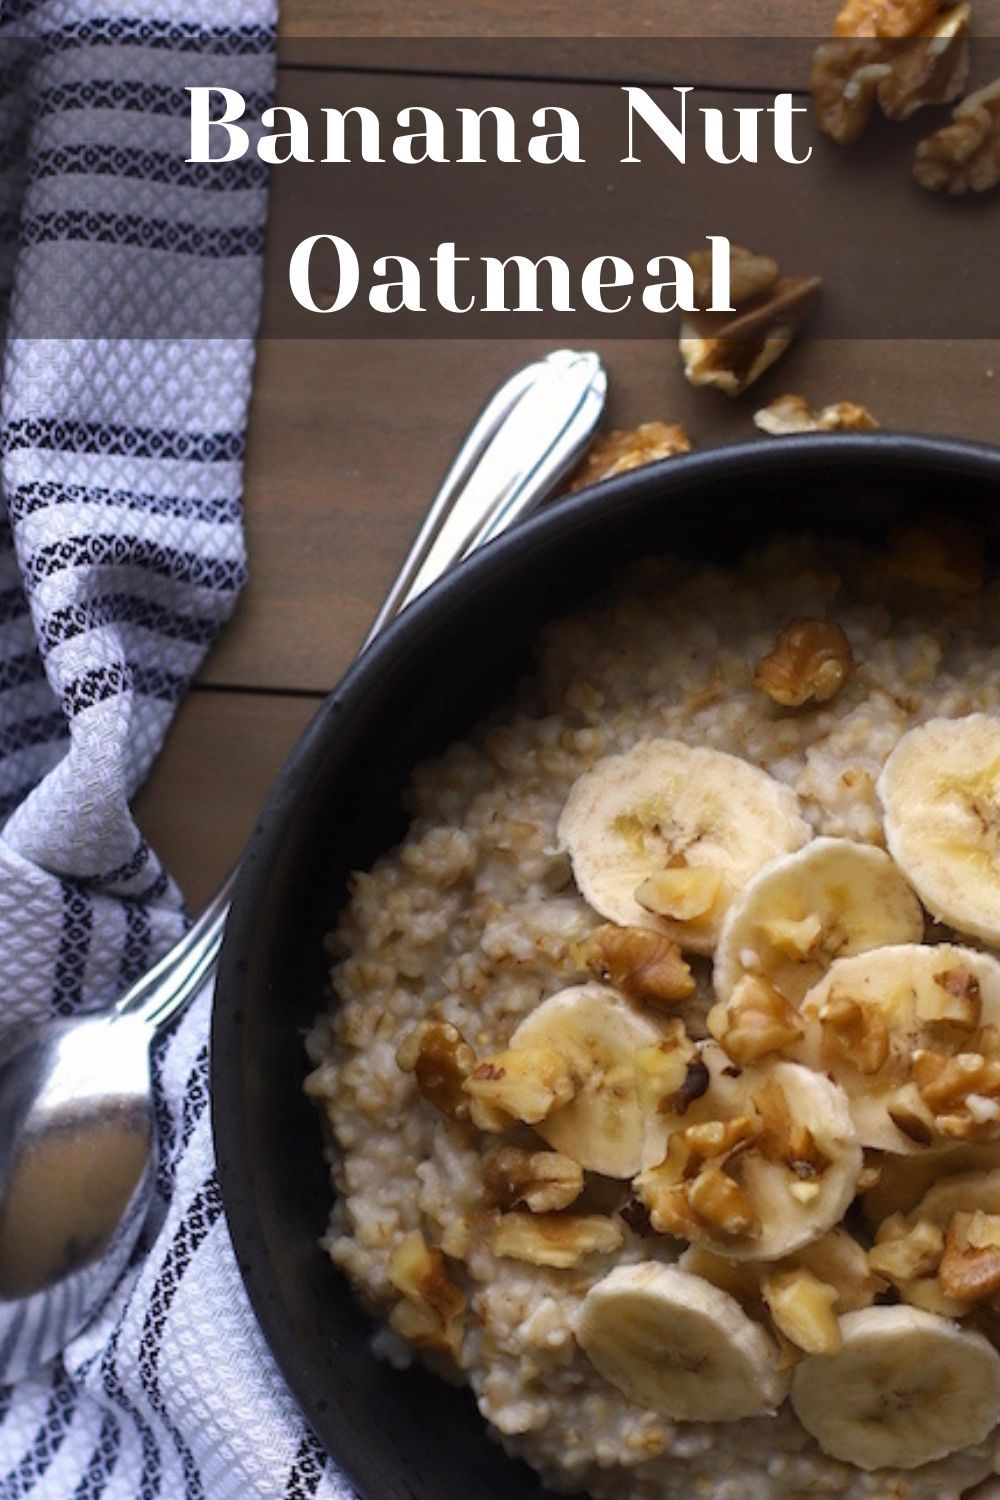 This oatmeal is so delicious and has zero added sugar! A healthy breakfast can be yummy, too. And you'll stay full longer! #HealthyOatmeal #SteelCutOats #NuttyOatmeal